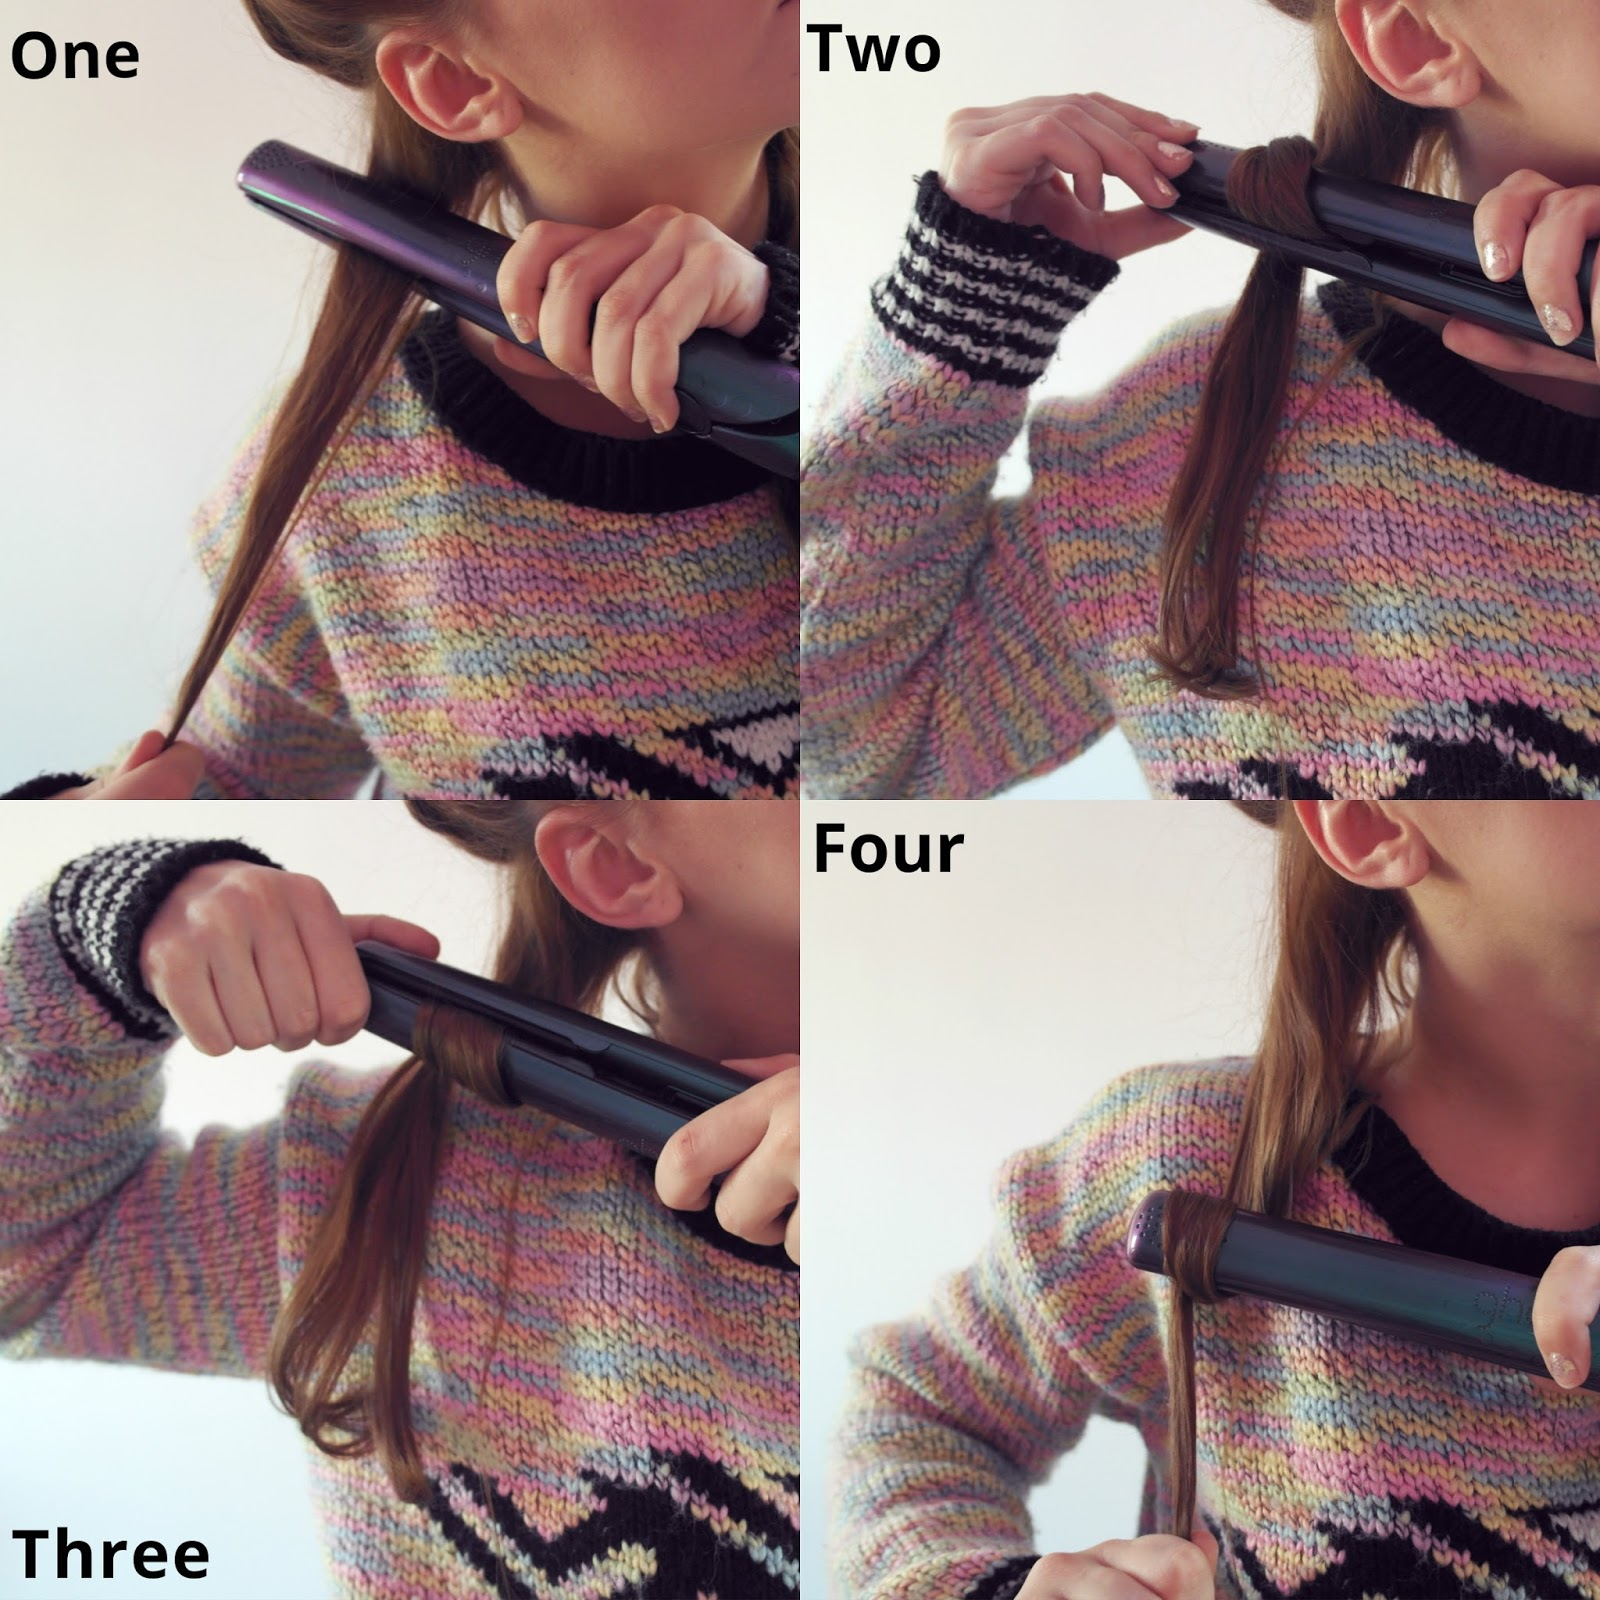 Hair Care Ghd V Wonderland Styler Creating Curls